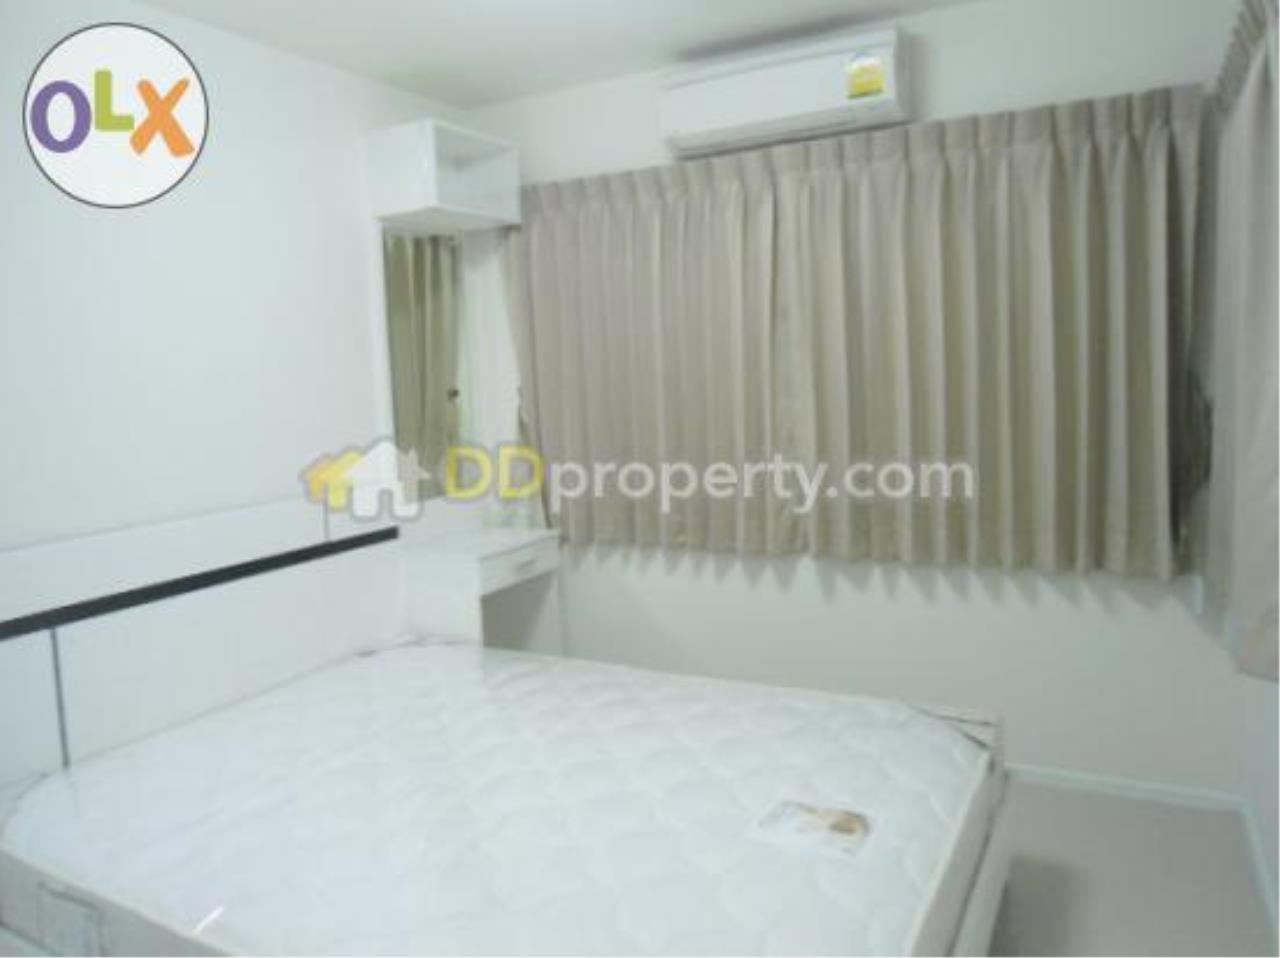 The Agent Real Estate Co., Ltd. Agency's For Sale Condo Kensington 12 Kensington Bearing Size 29.75 sqm. Floor 5, 1 bedroom, 1 bath, furnished foyer, near BTS Bearing only 1 km. Sukhumvit, Lasalle, Srinakarin, Bangna - Trad, Theparak with 2 air conditioners. 11